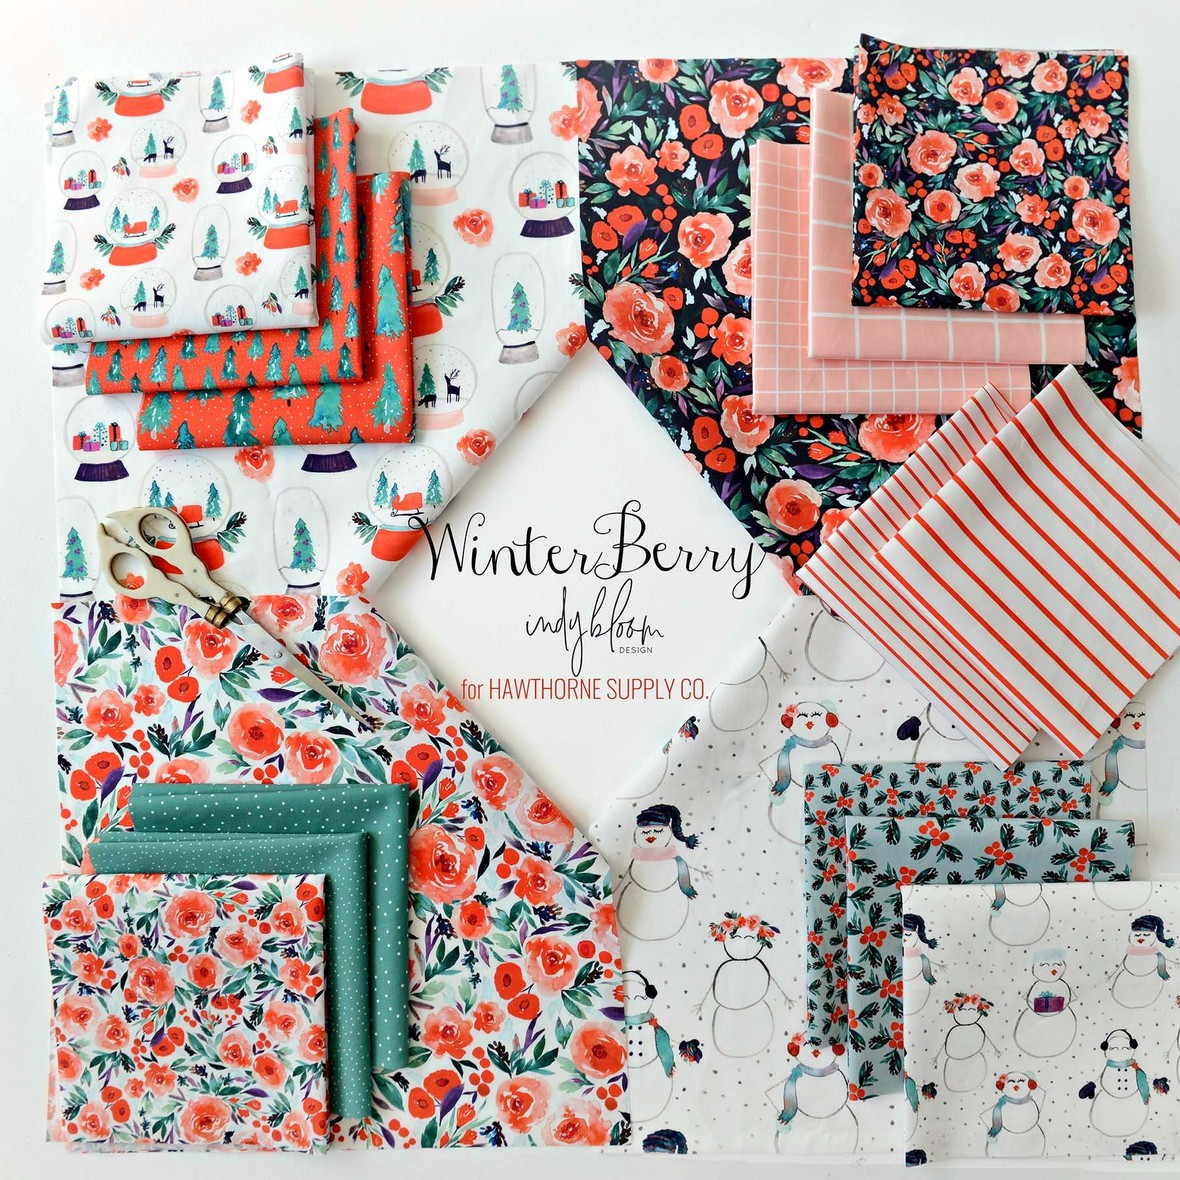 Winter Berry Fabric  Indy Bloom for Hawthorne Supply Co